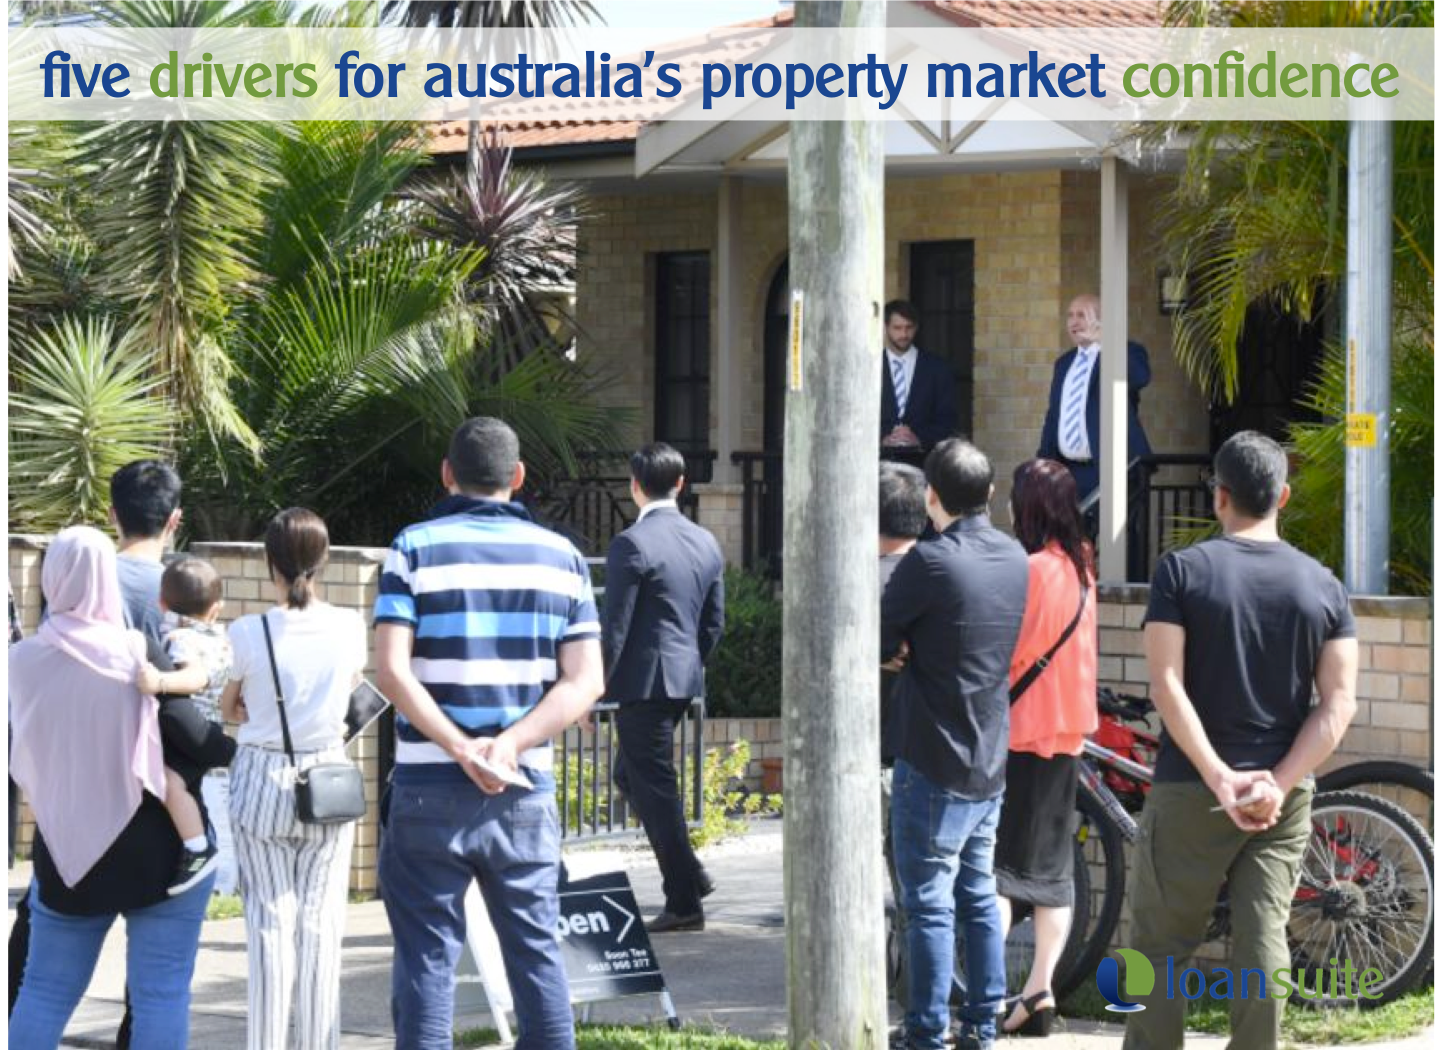 5 Key Reasons Australian Property Market Confidence is Booming - Loansuite - Mortgage Brokers